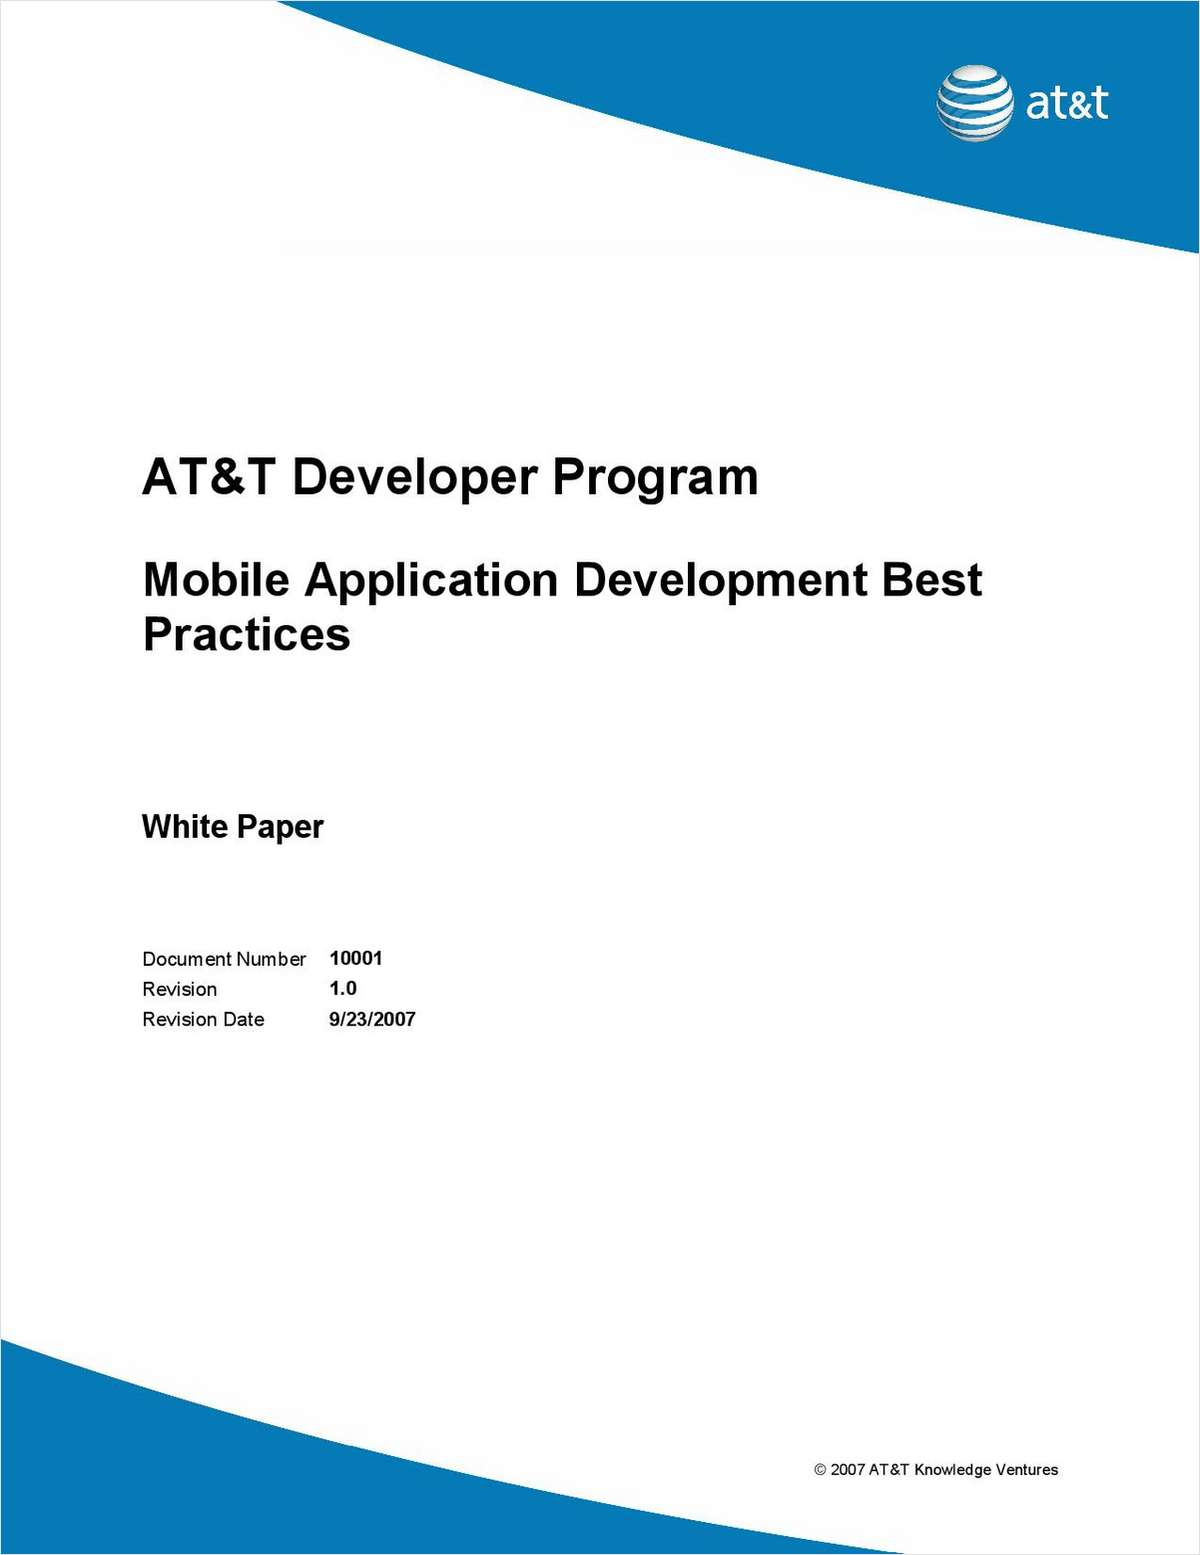 AT&T Developer Program - Mobile Application Development Best Practices